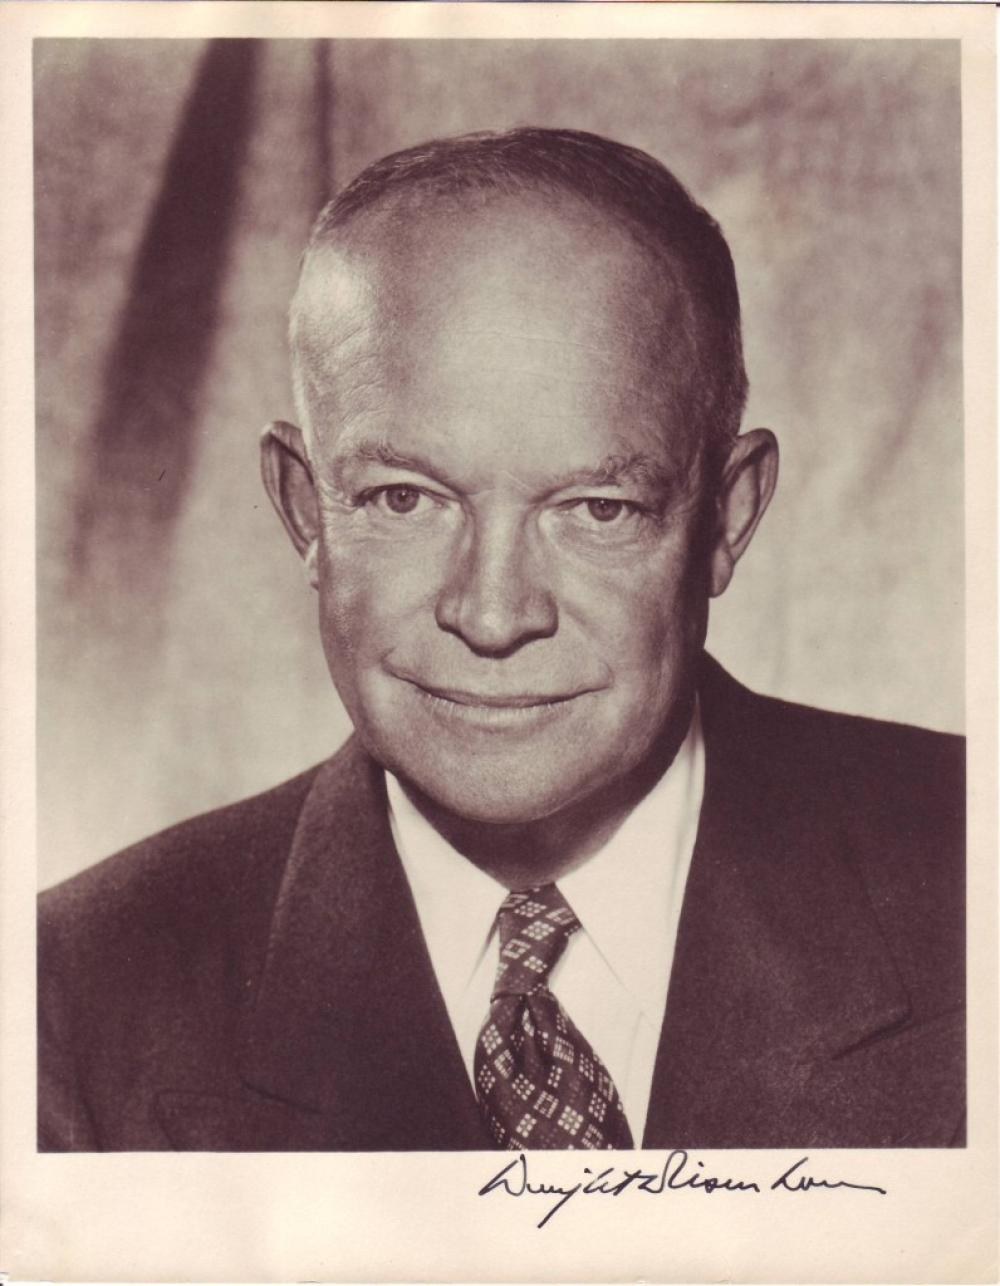 EISENHOWER, DWIGHT D. Photograph Signed, bust portrait showing him looking into the camera.